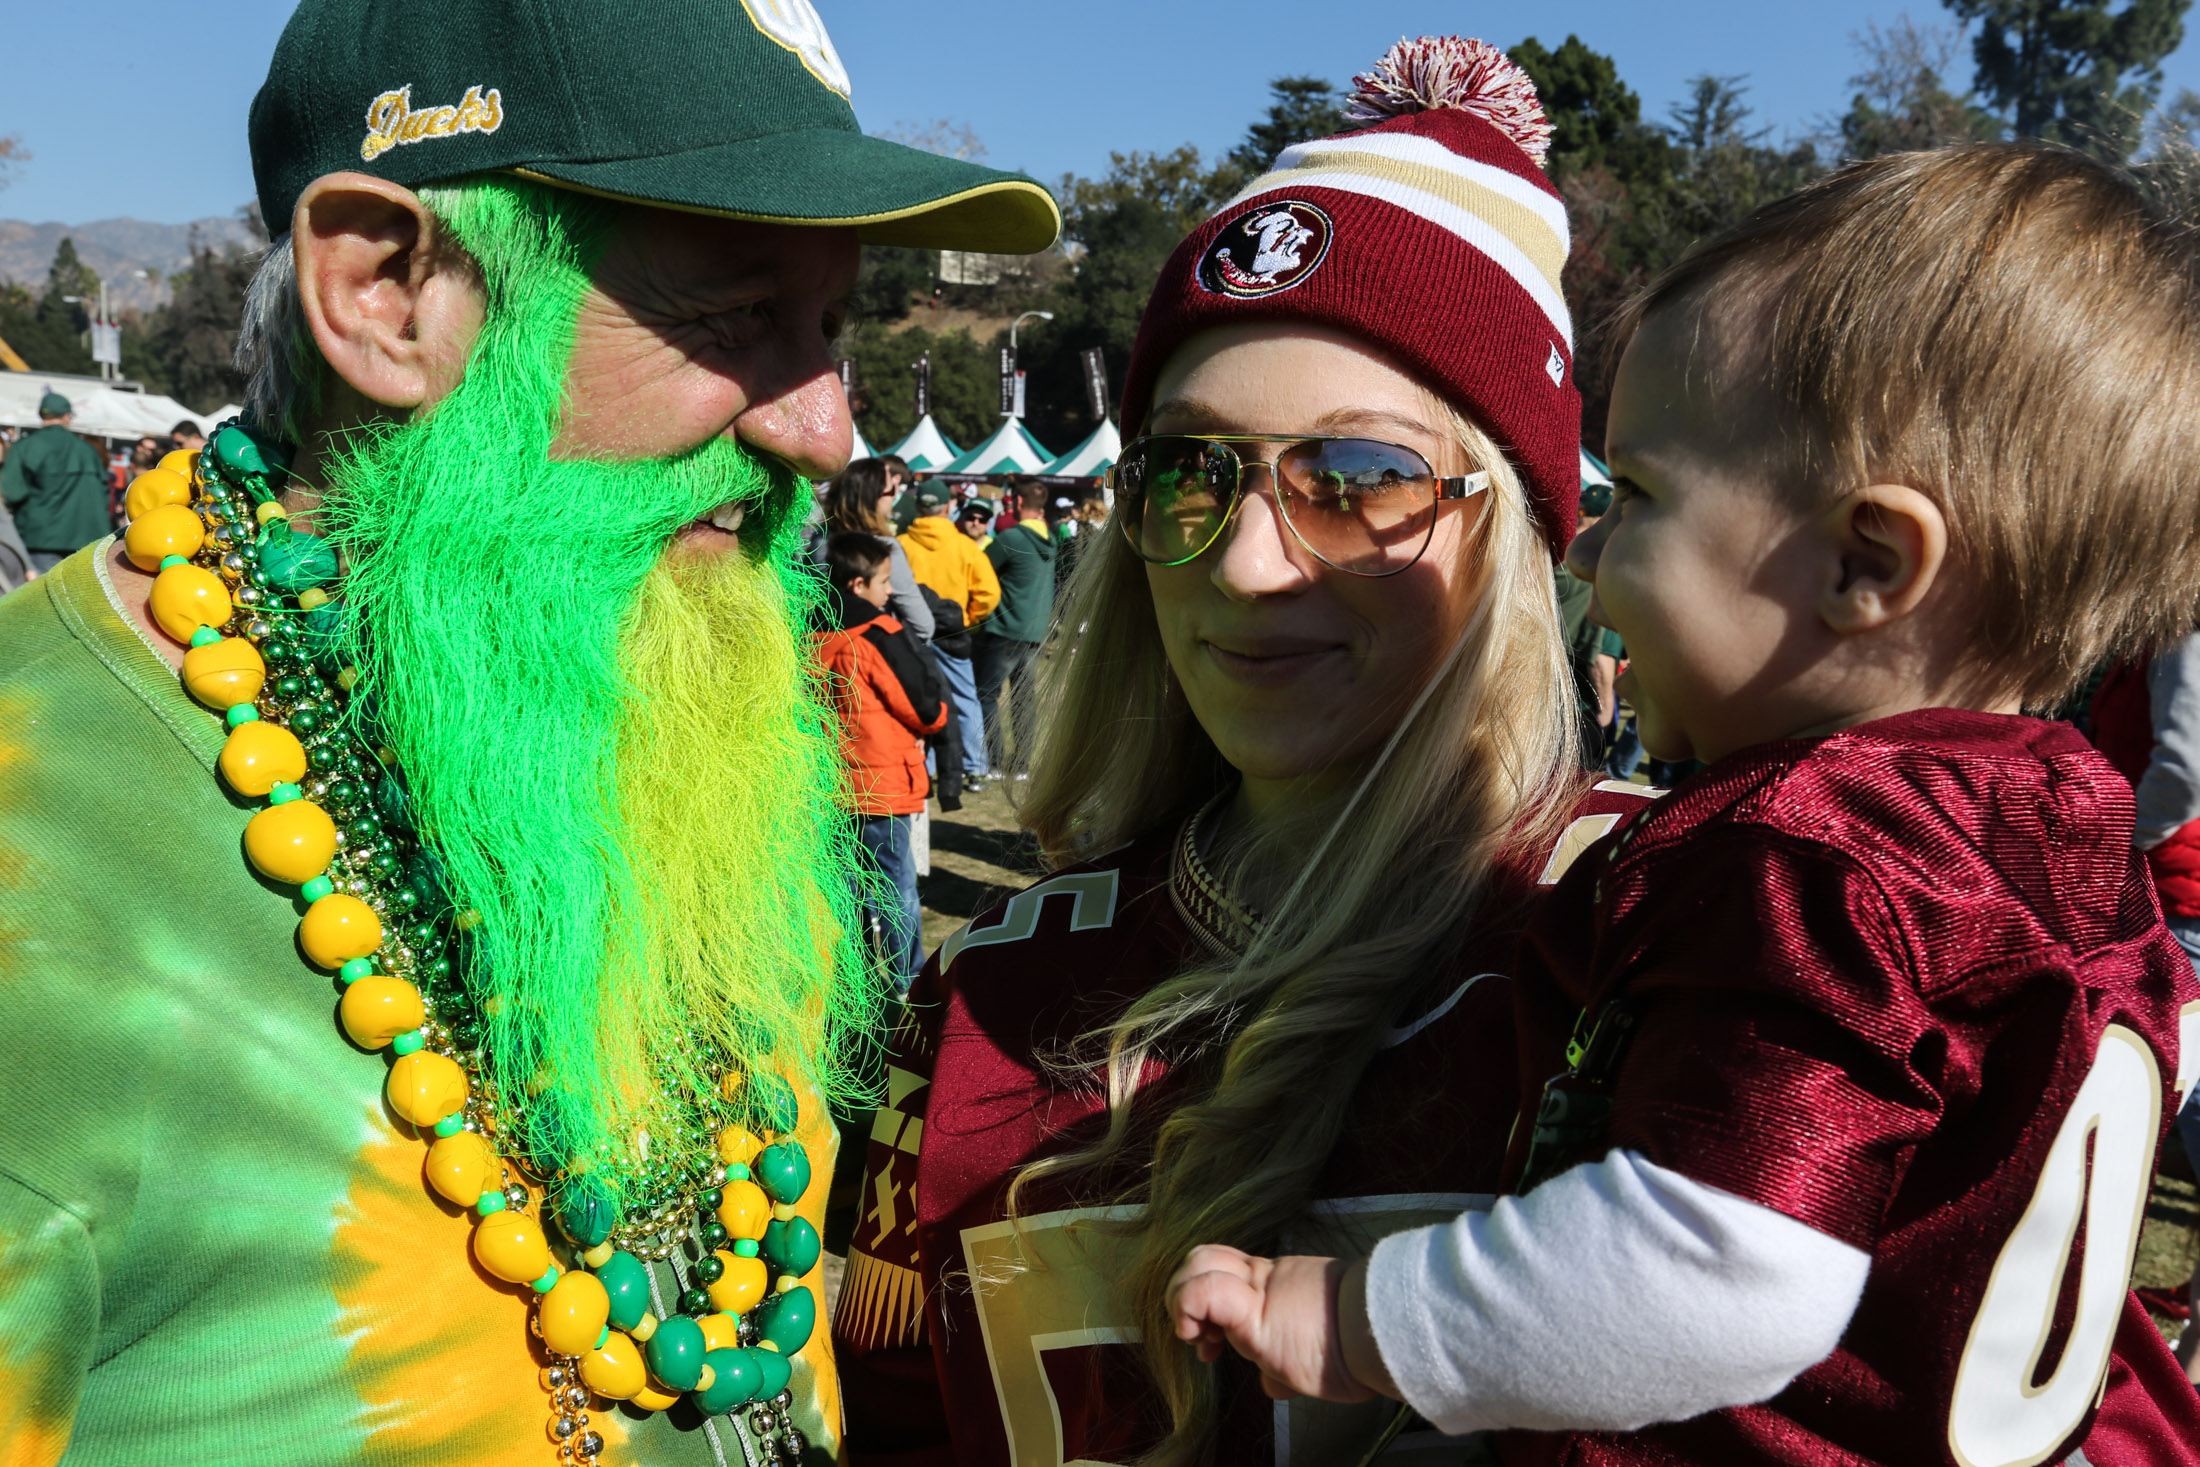 Florida State vs Oregon Ducks at the Rose Bowl in College Football Playoff - Super Fans Old and New